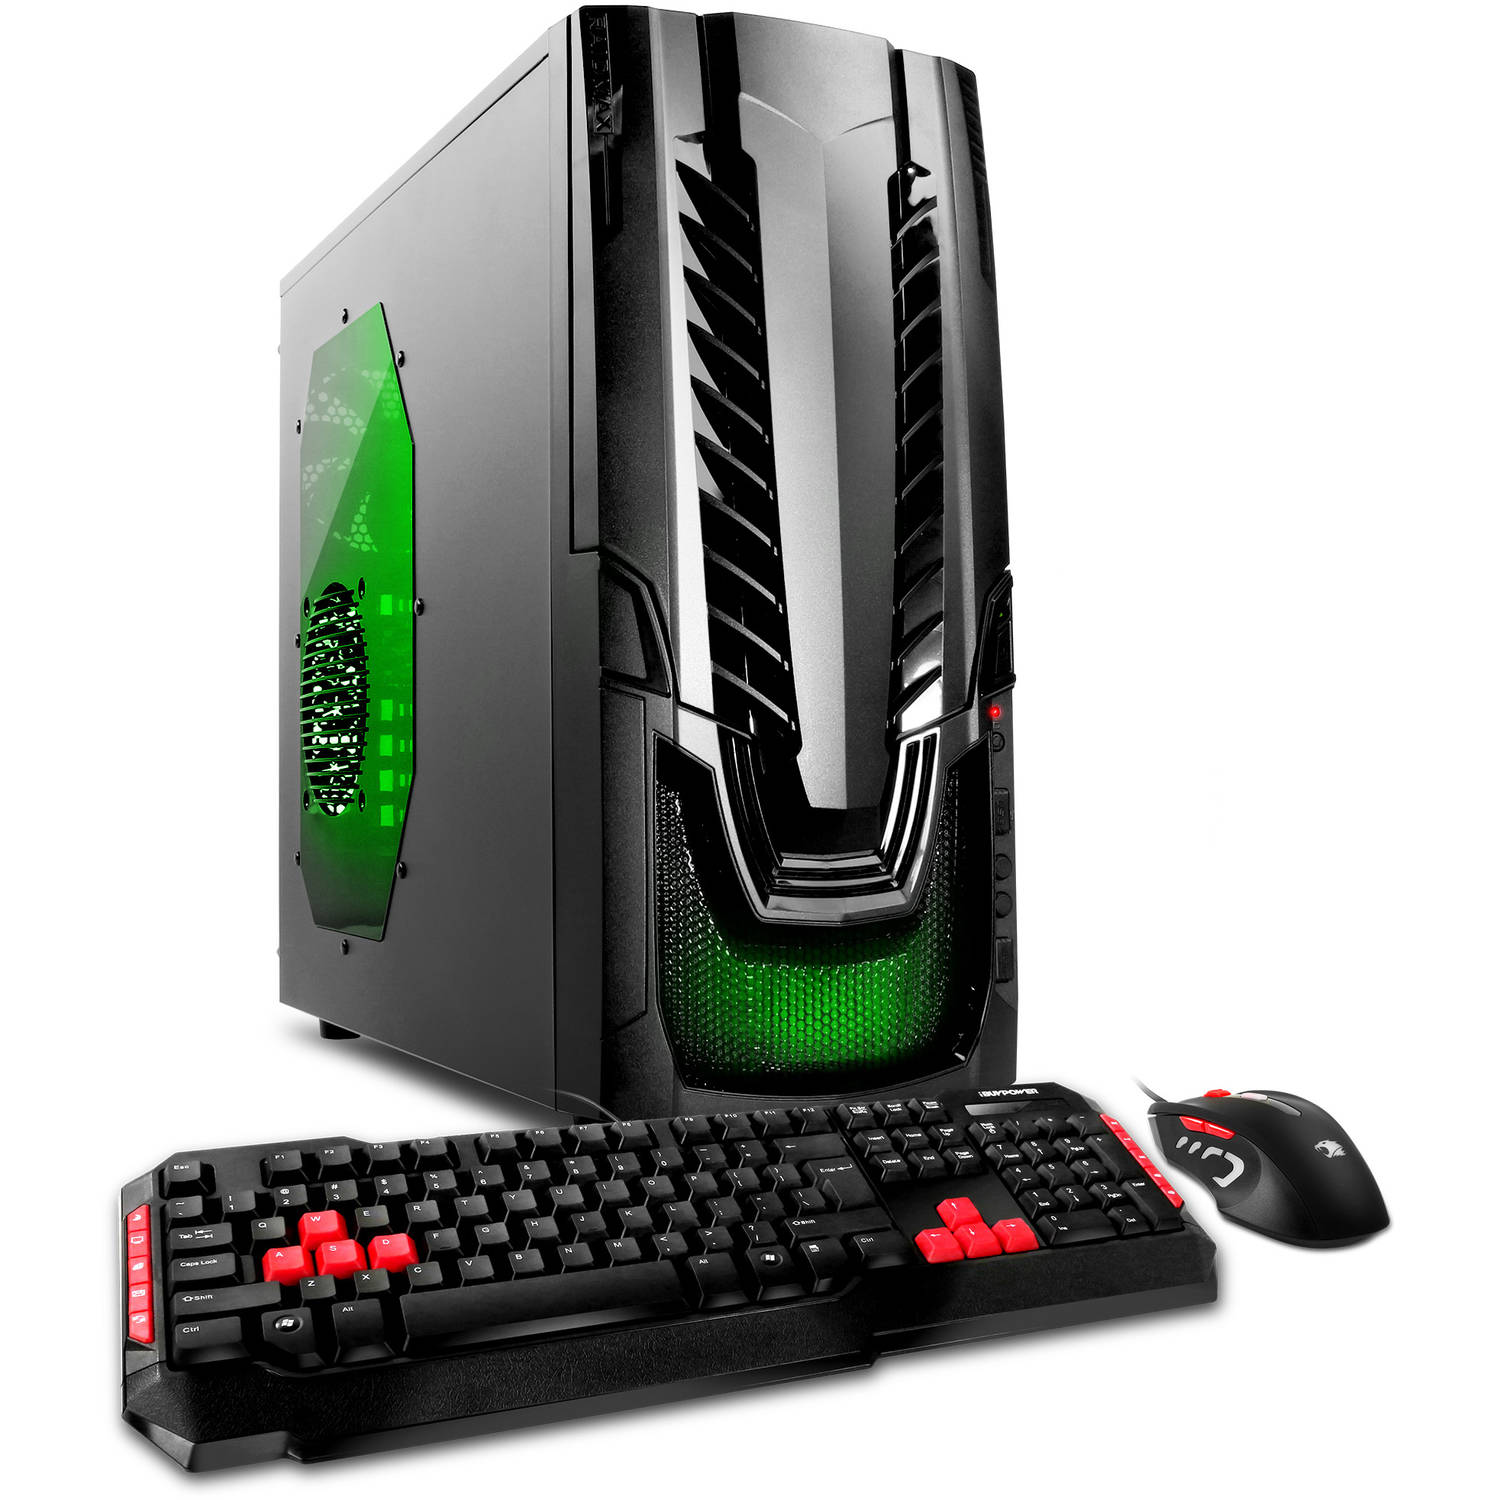 iBUYPOWER WA560G Gaming Desktop PC with AMD FX-6300 Quad-Core Processor, 8GB Memory, 1TB Hard Drive and Windows 10 Home (Monitor Not Included)